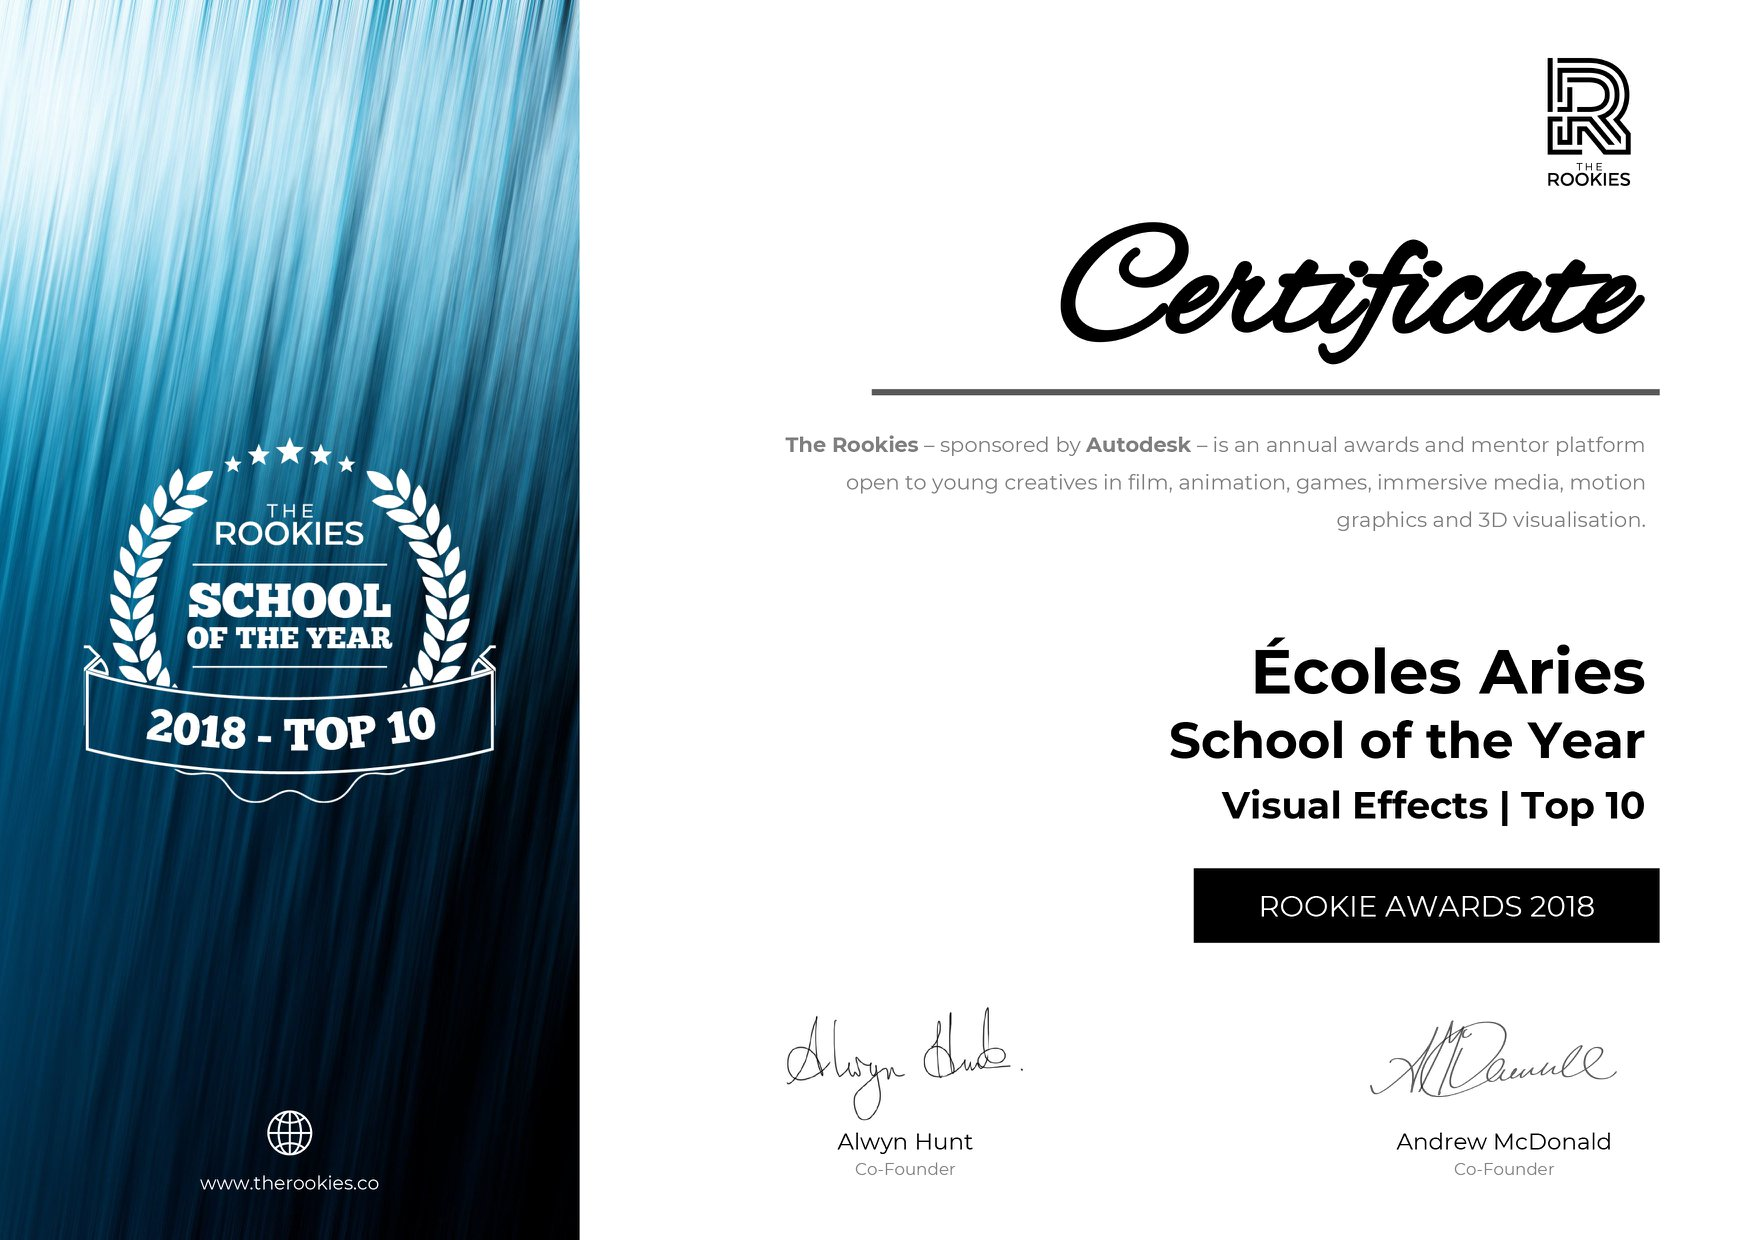 the rookies awards 2018 : certificat école animation 3d et vfx